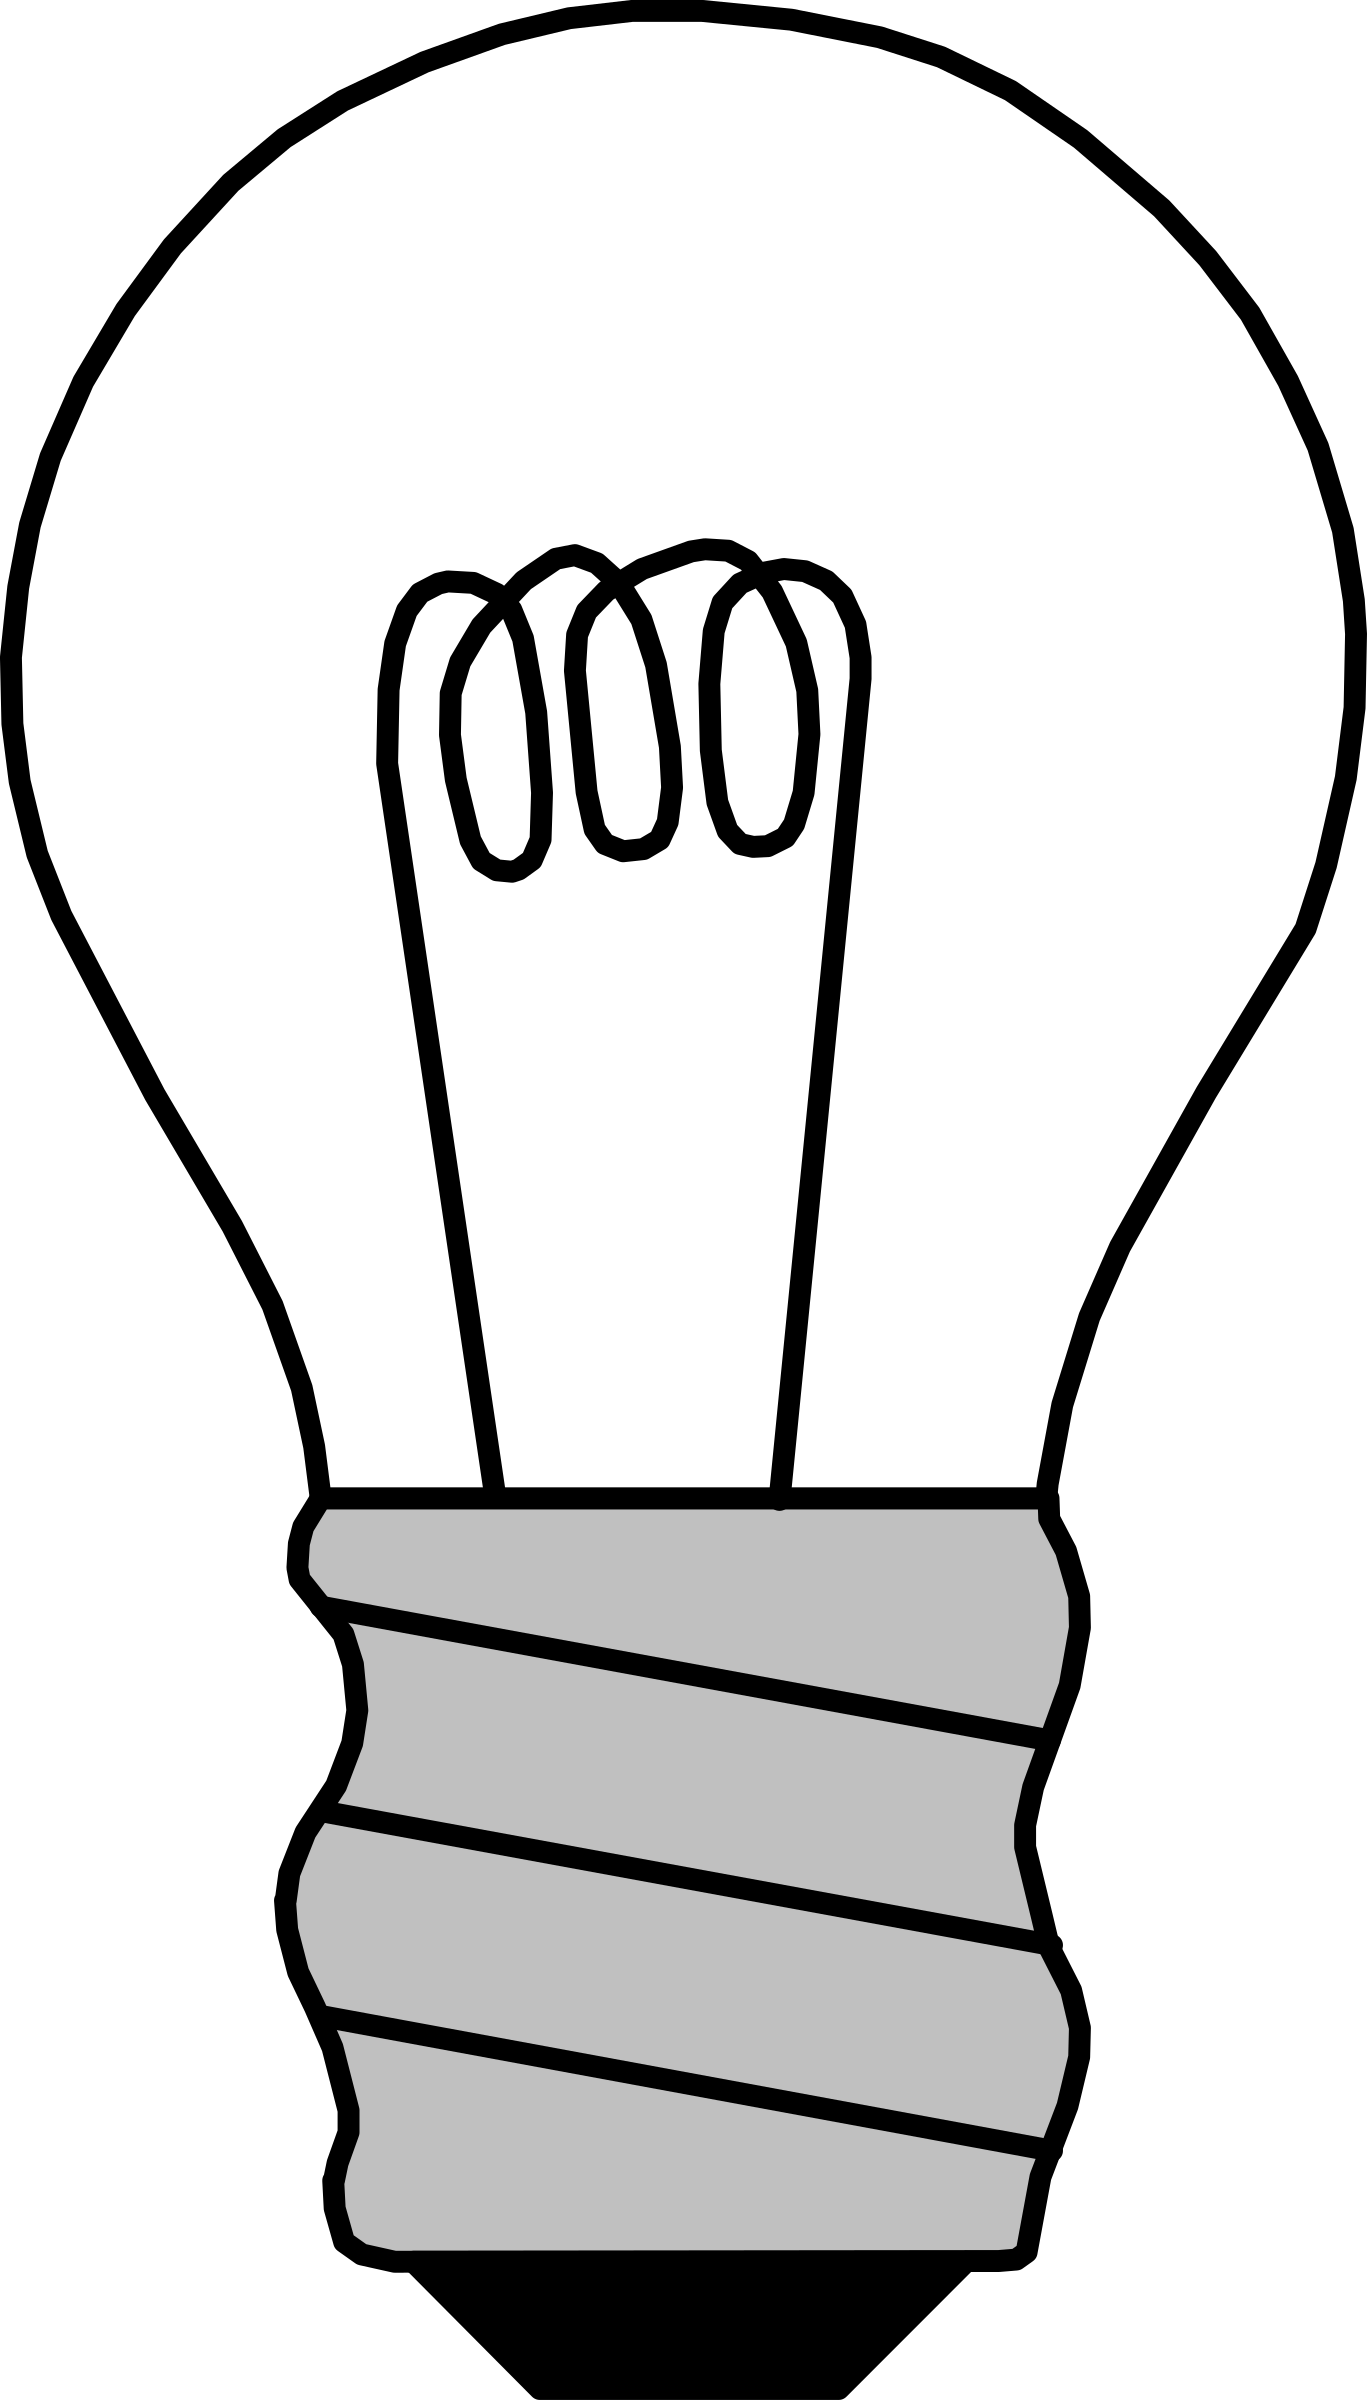 Off icons png free. Light bulb clip art black and white